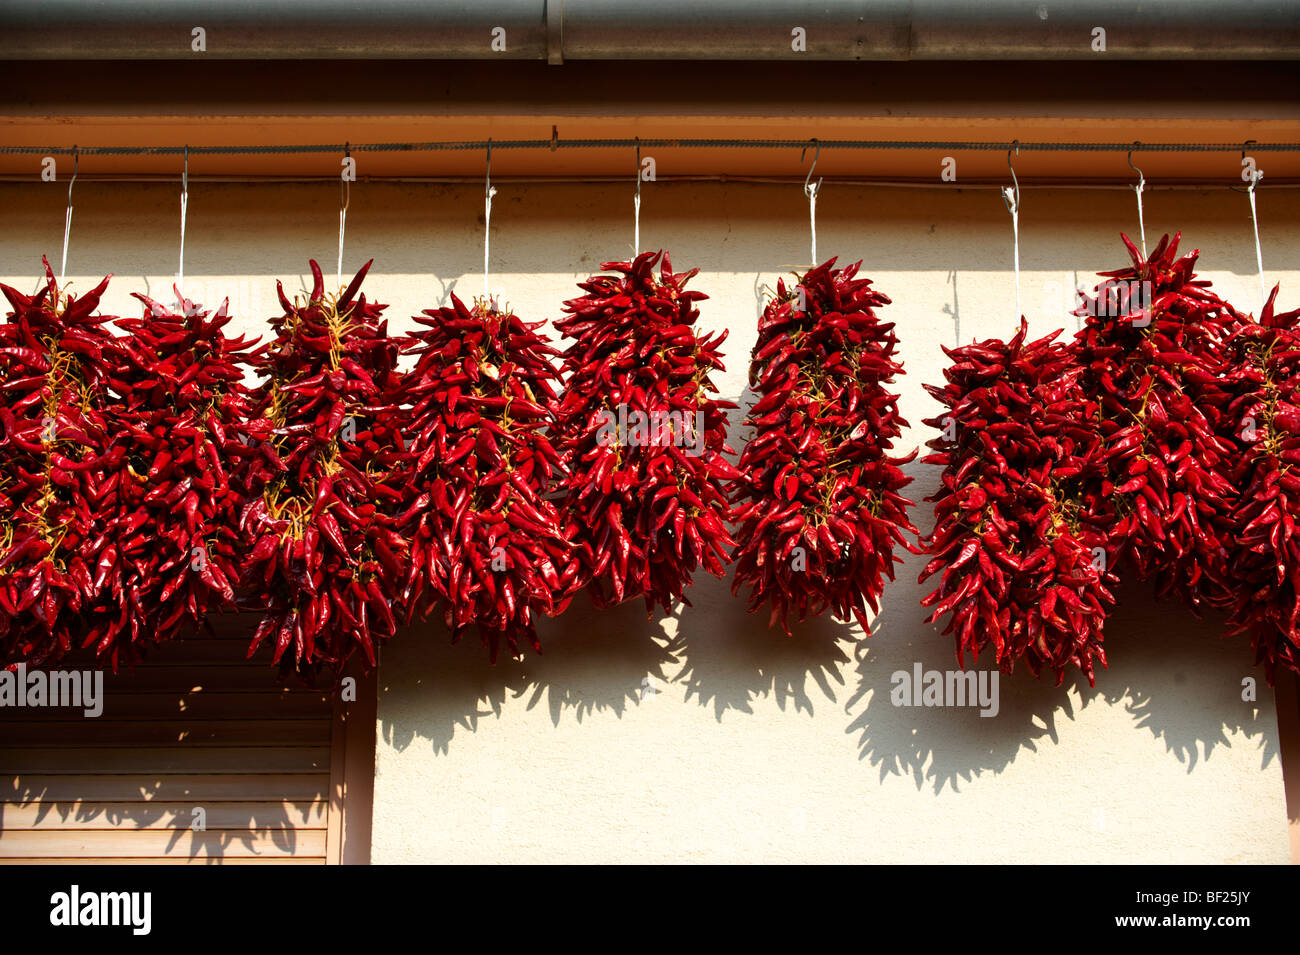 Capsicum annuum or chili peppers air drying to make Hungarian paprika - Kalocsa Hungary - Stock Image